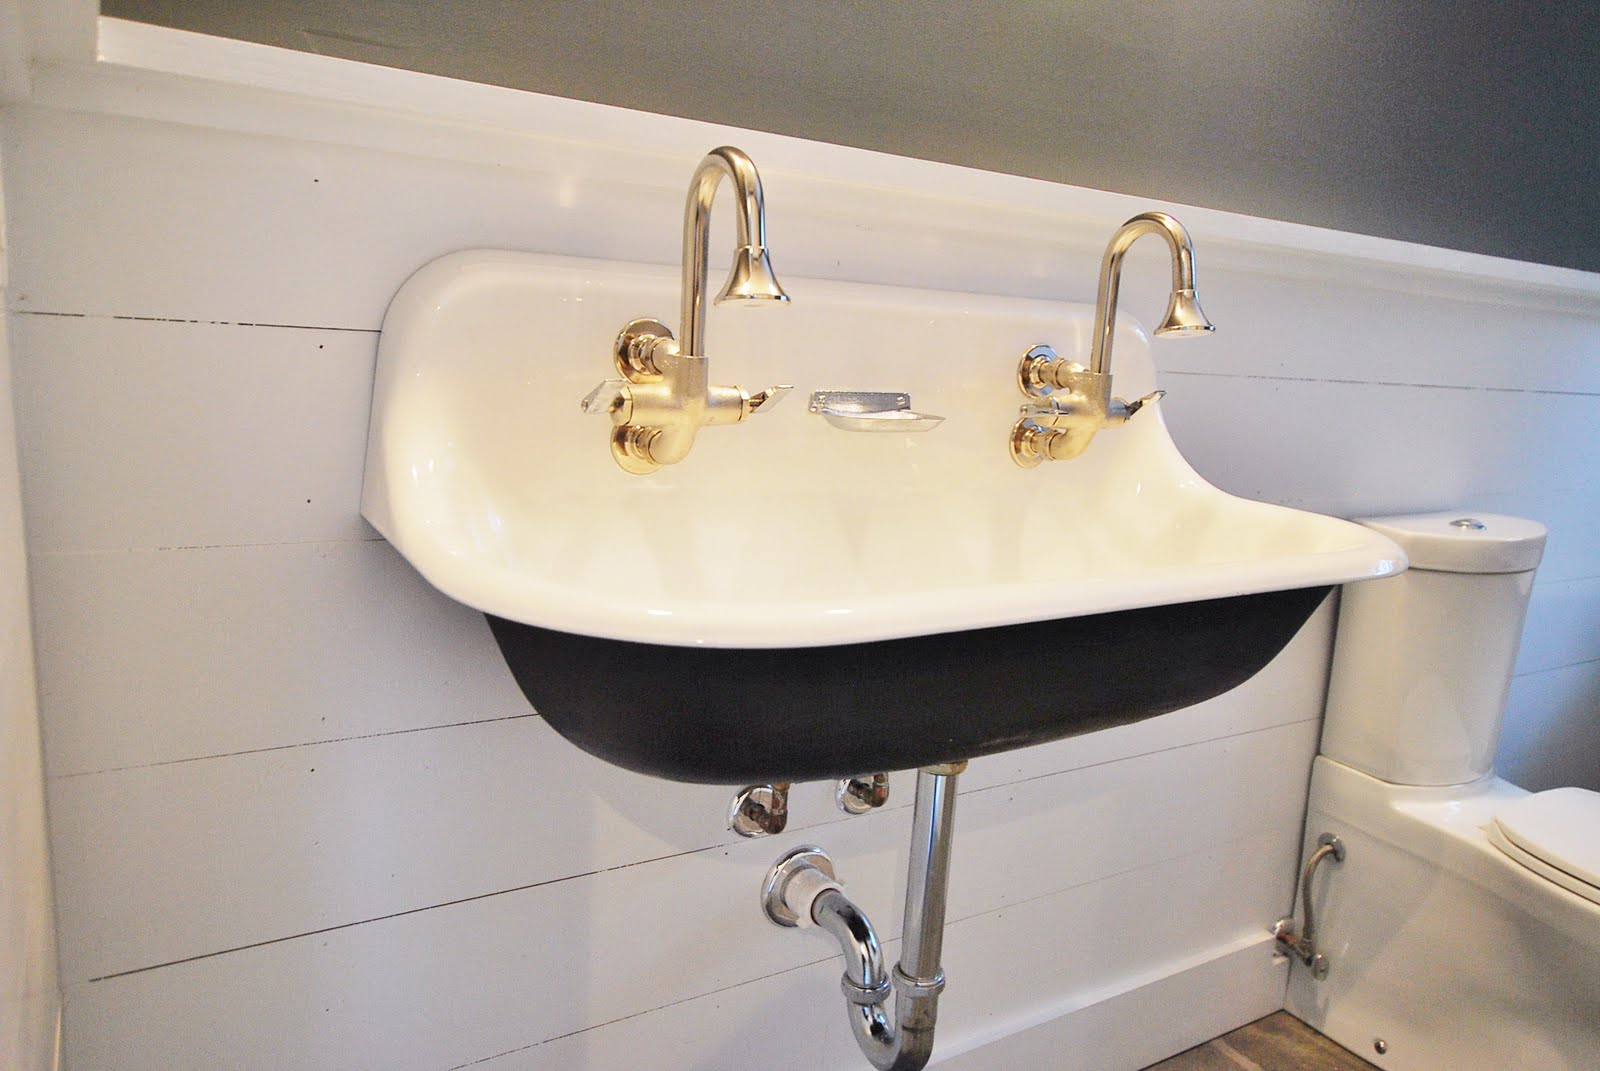 montclair mounted sink instyle newport mount faucet bathworks large brass nwp new lavatory htm wall bathroom faucets